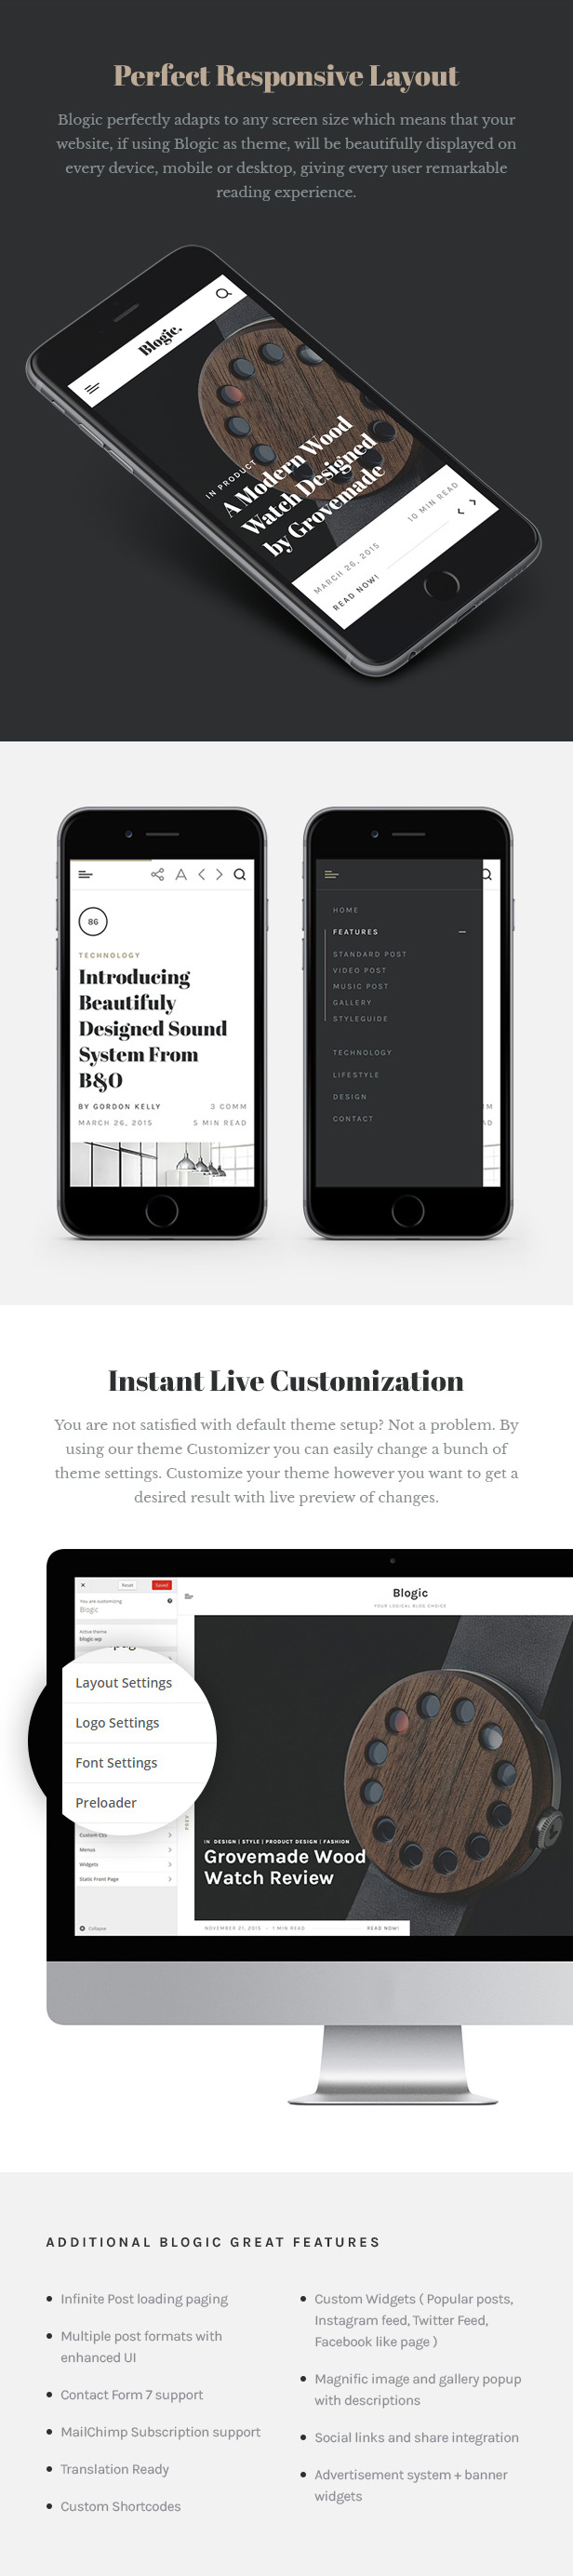 Blogic - A Responsive Blog WordPress Theme